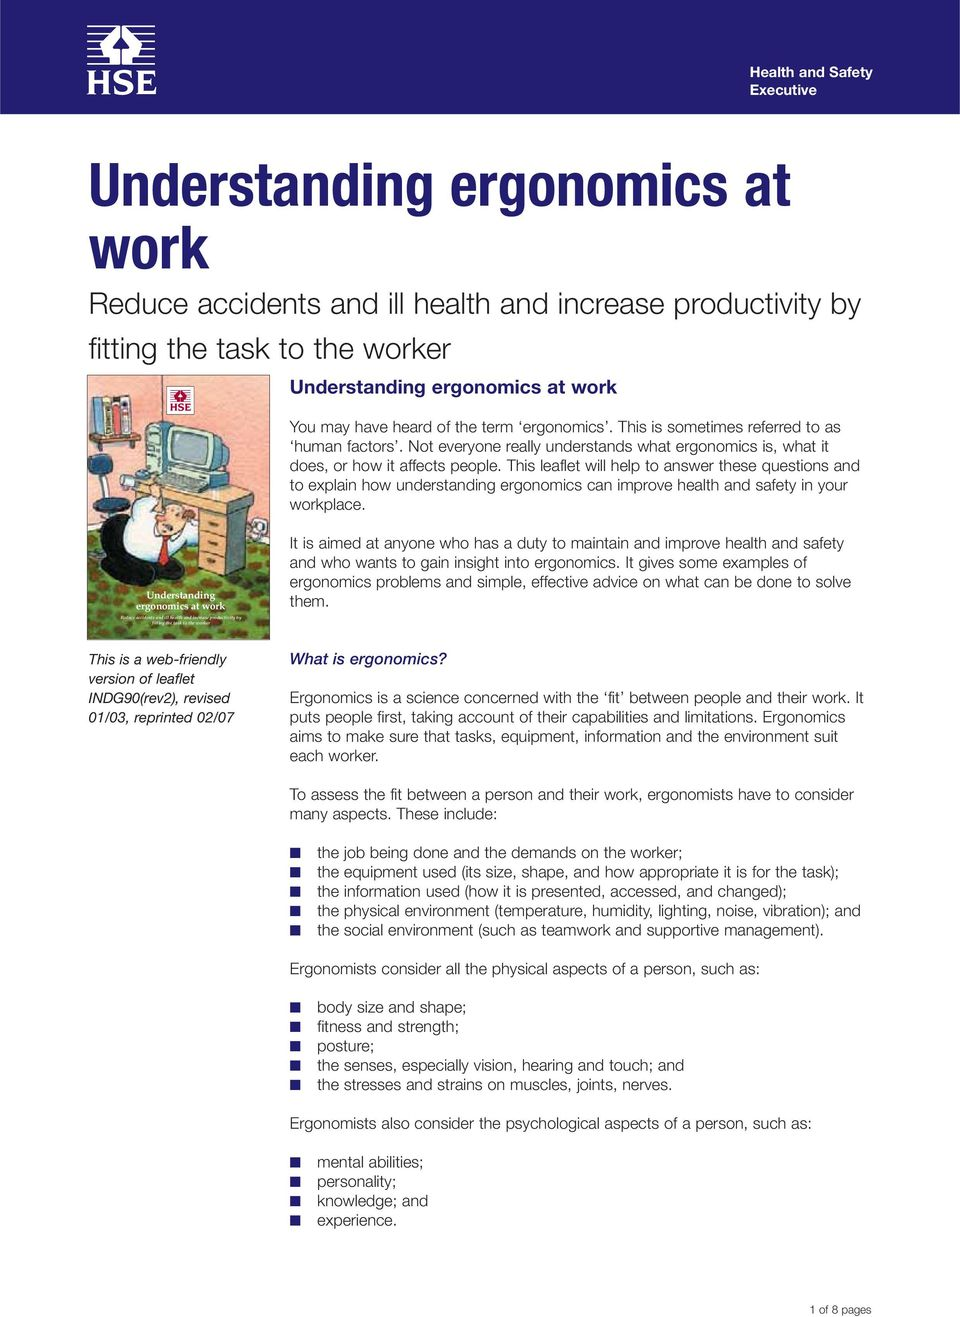 This leaflet will help to answer these questions and to explain how understanding ergonomics can improve health and safety in your workplace.